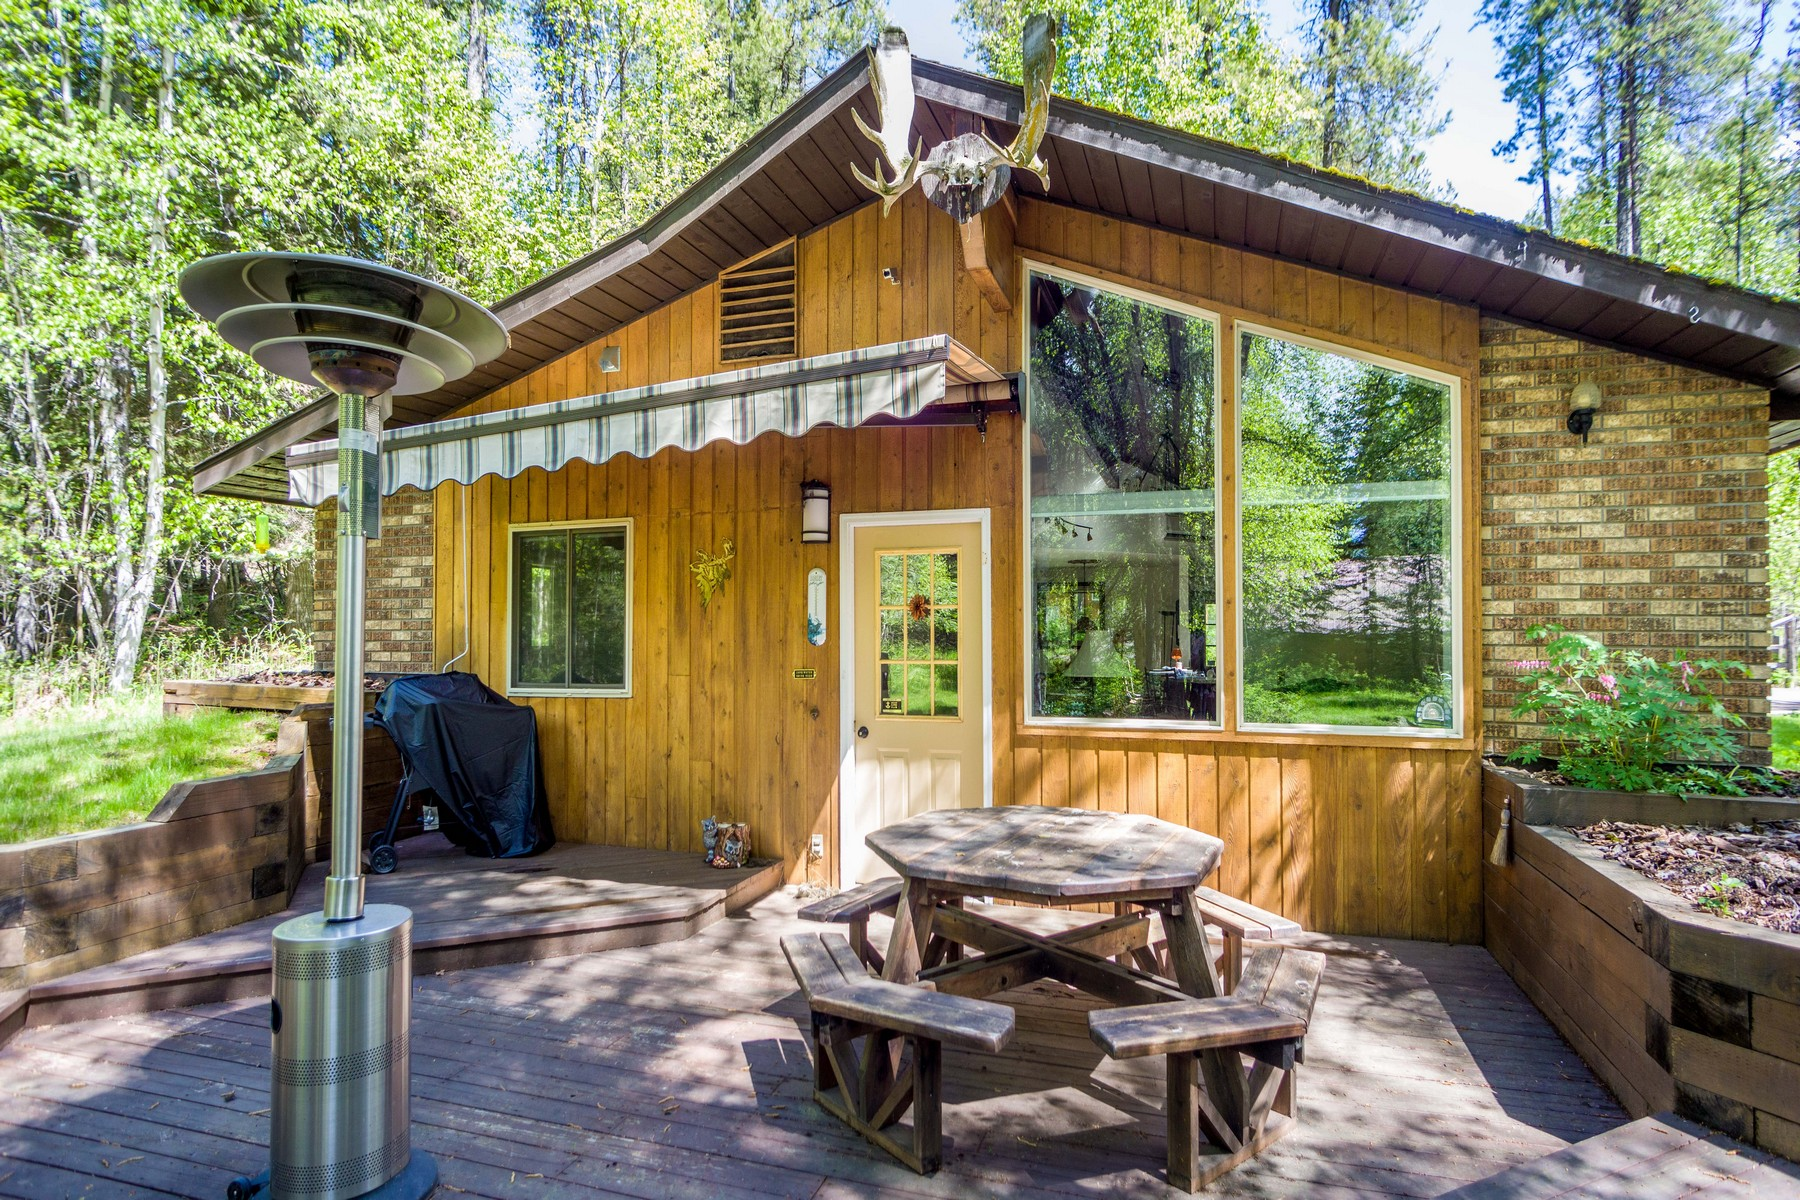 Additional photo for property listing at 40 Lazy Swan Ln , Bigfork, MT 59911 40  Lazy Swan Ln Bigfork, Montana 59911 United States